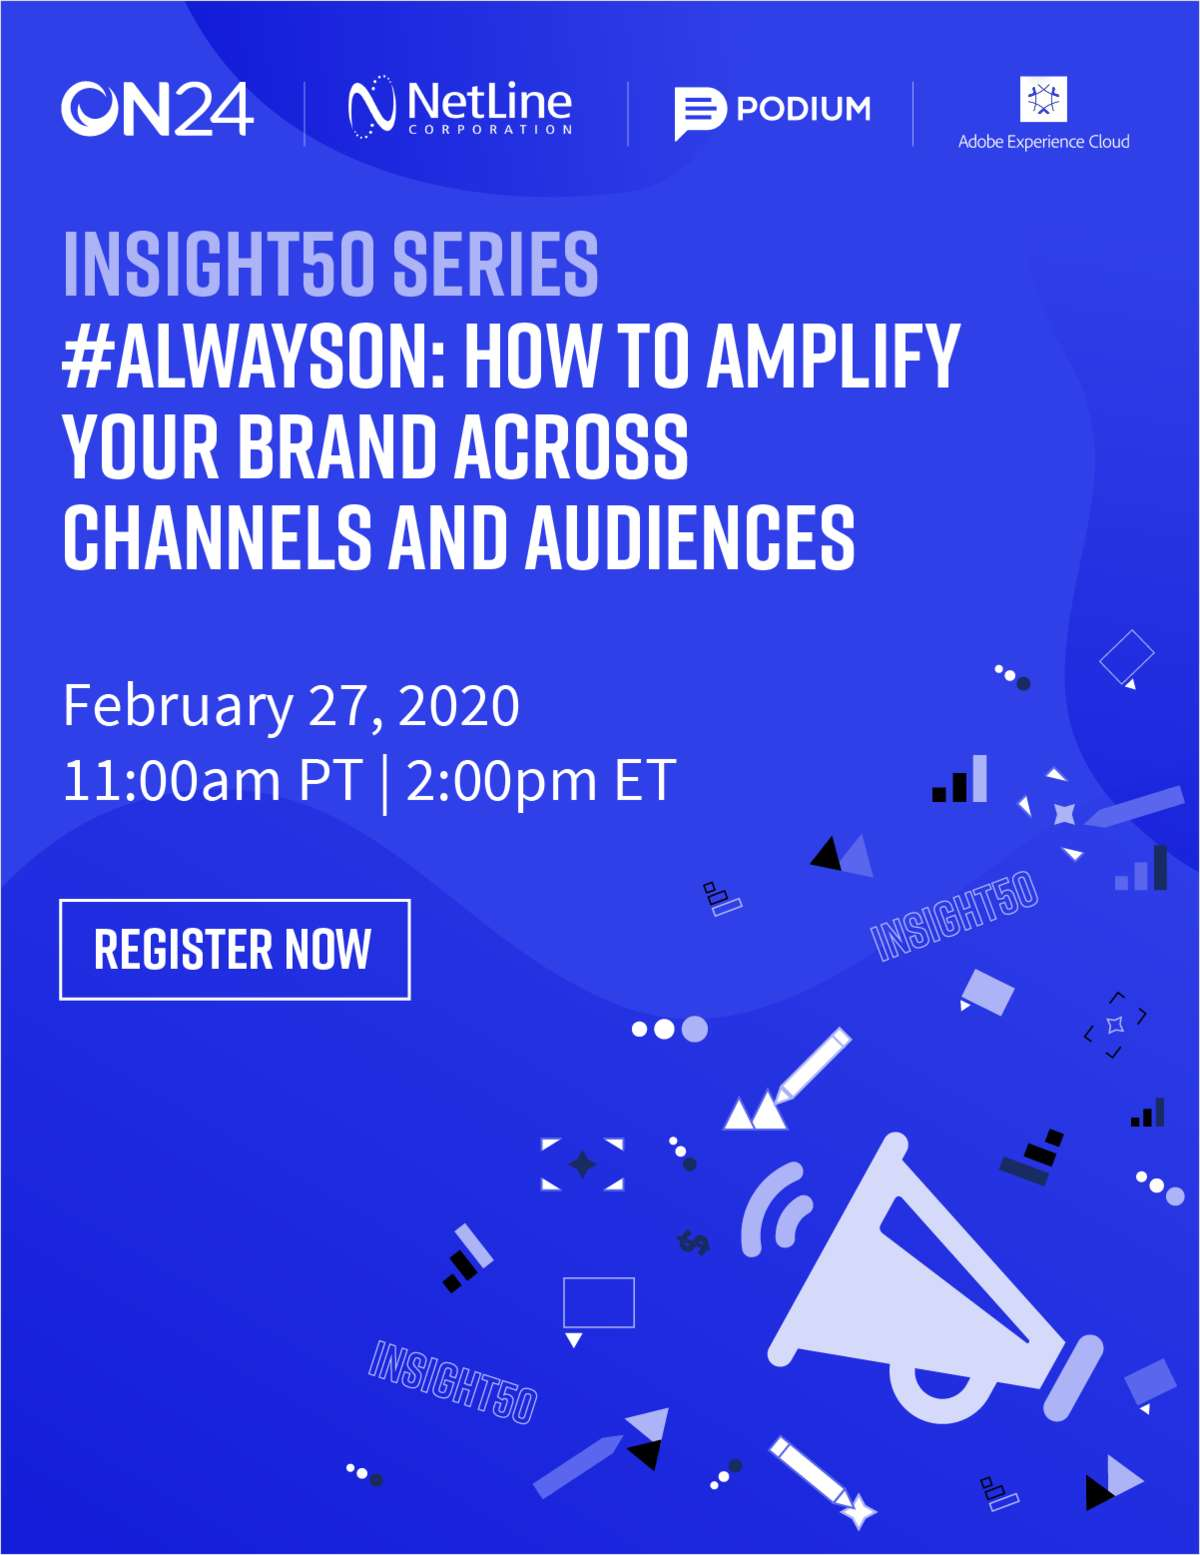 #AlwaysOn: How to Amplify Your Brand Across Channels and Audiences